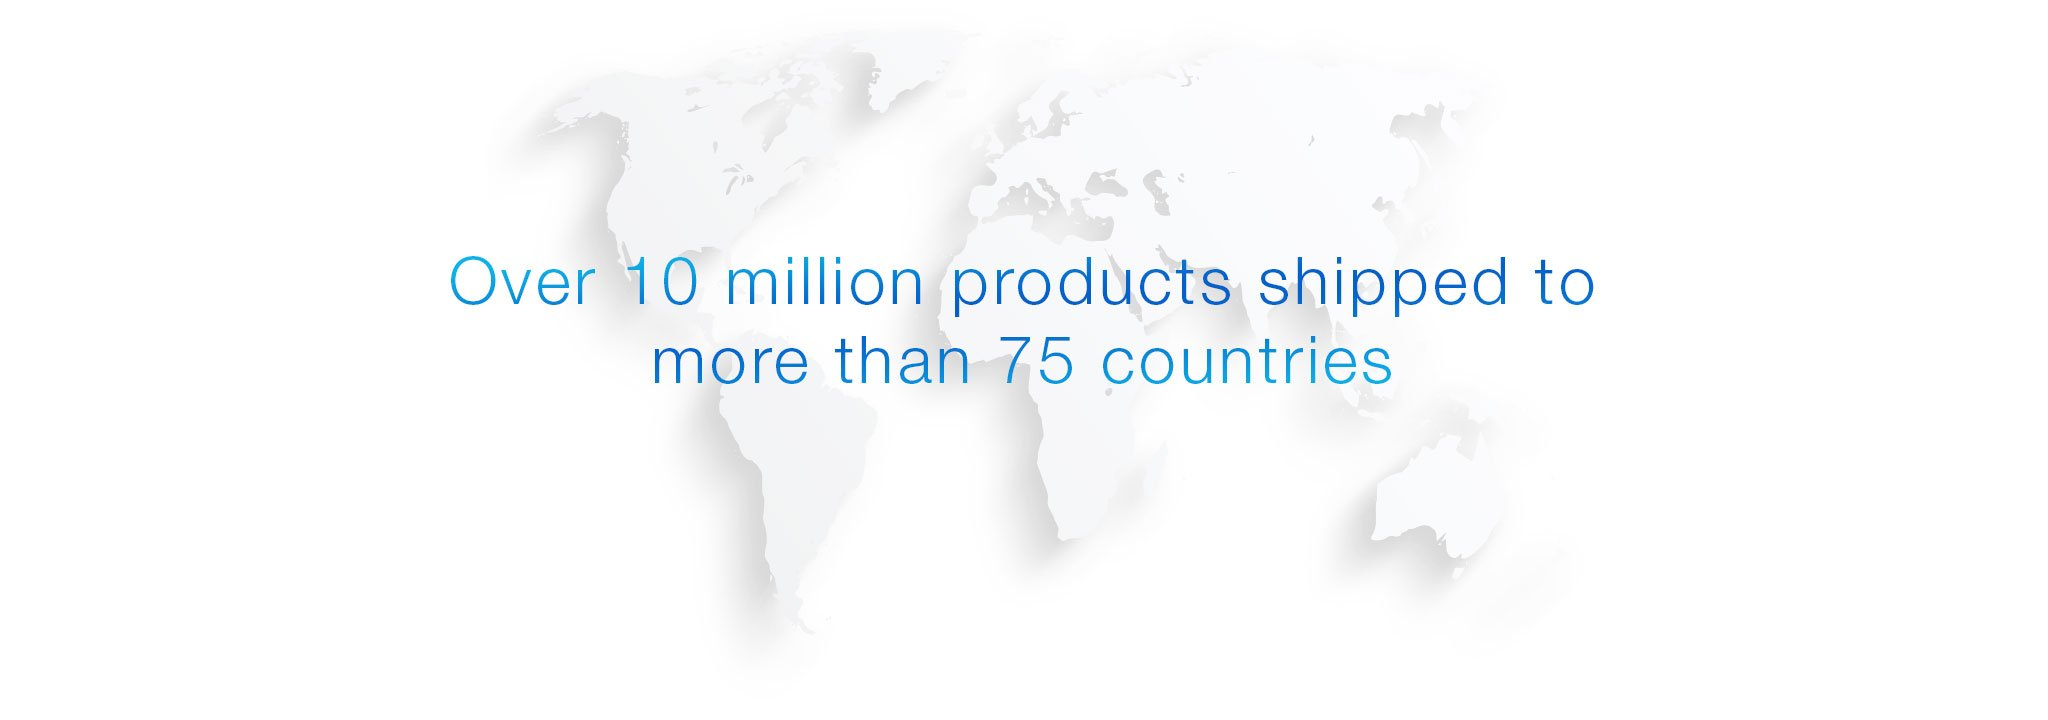 Over 10 million products shipped to over 75 countries